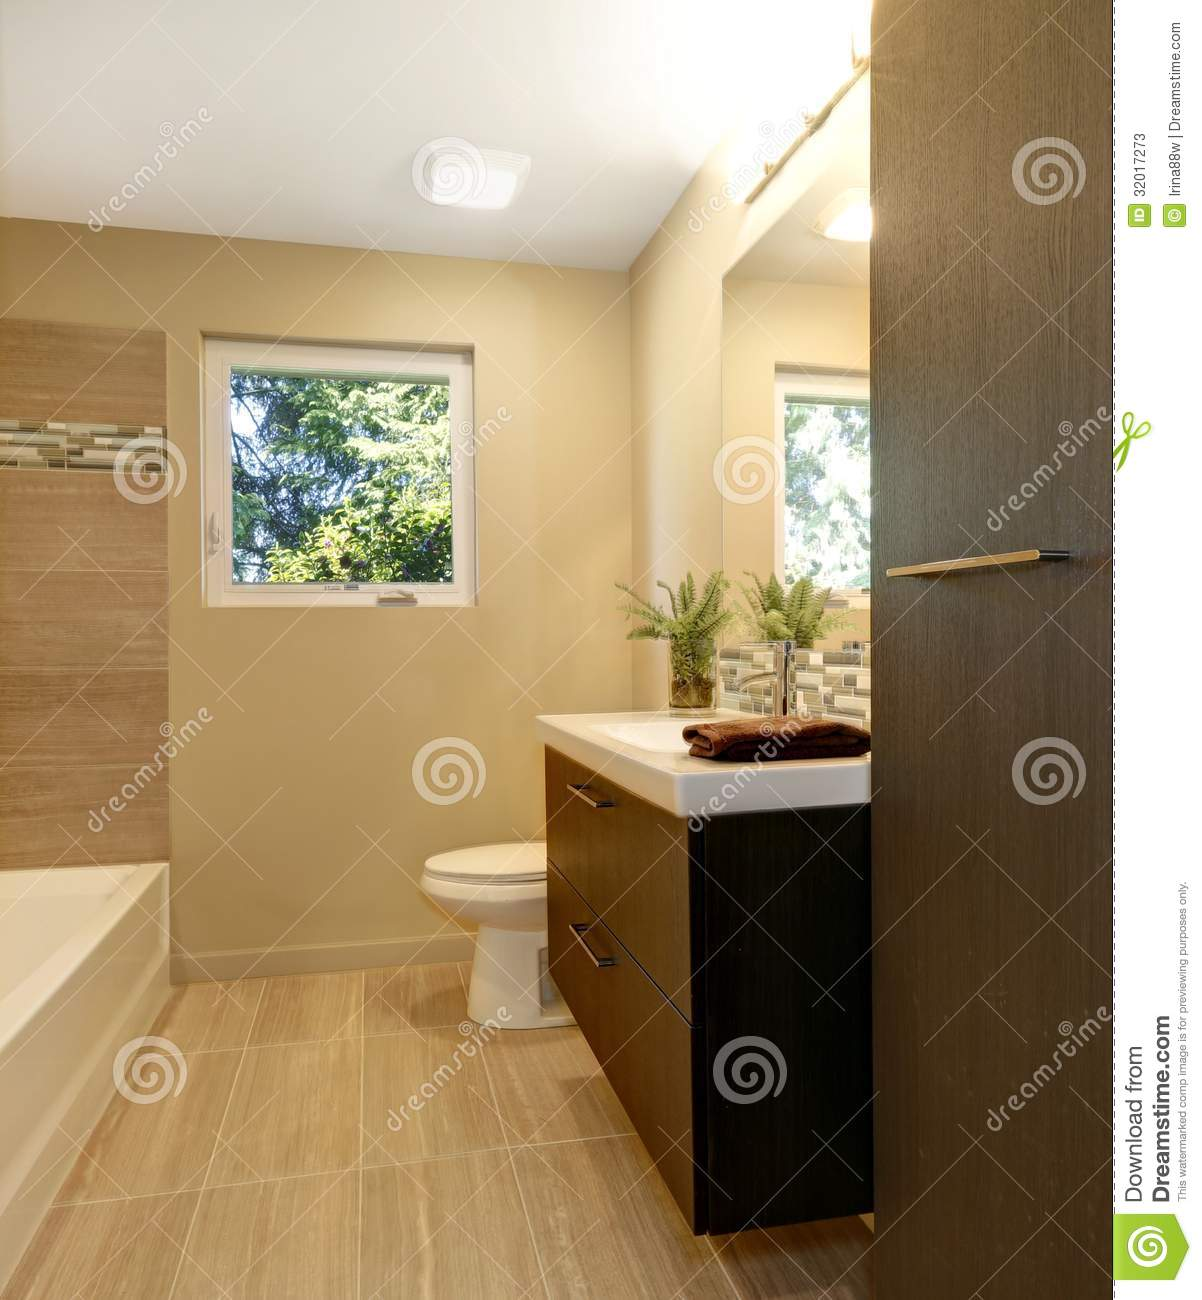 Cuartos De Baño Con Tina:White Cabinet Beige and Brown Bathrooms